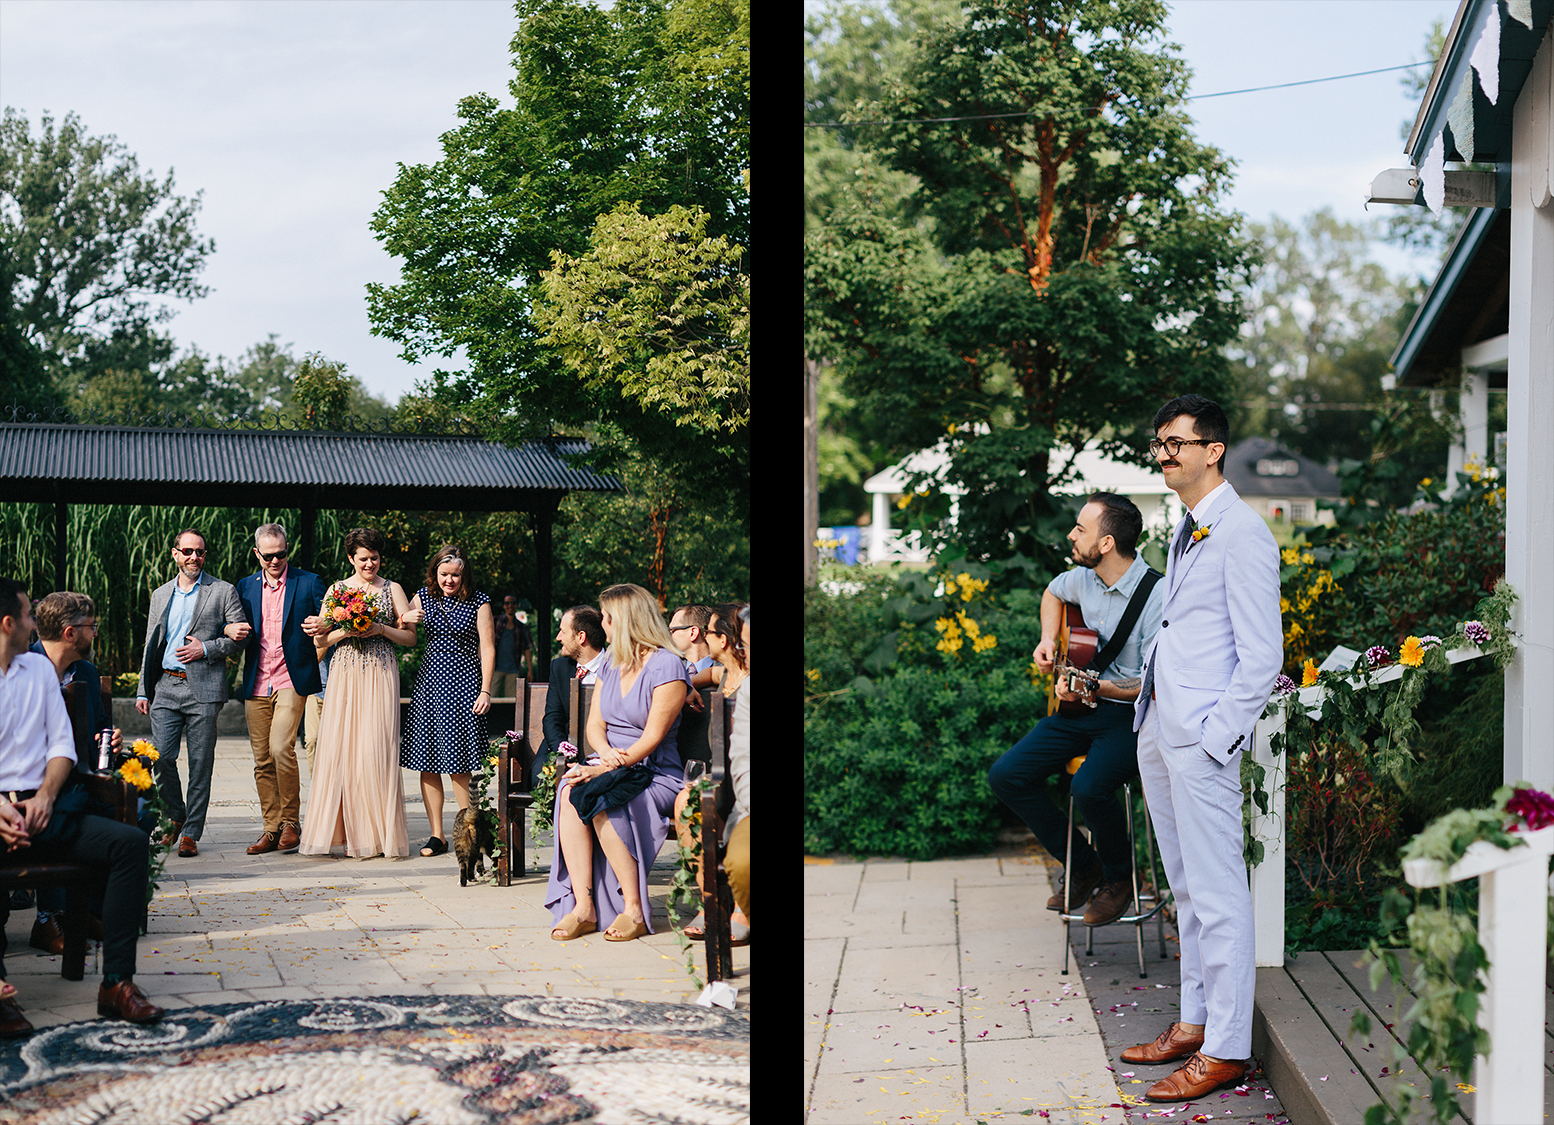 Best-Wedding-Photographers-Toronto-with-documentary-style-photojournalistic-wedding-photographer-editorial-cool-hip-timeless-Intimate-Vintage-Toronto-Island-Cafe-Clubhouse-Wedding-Venue-Detail-cinematic-first-look-Ceremony-Aisl-Walk.jpg